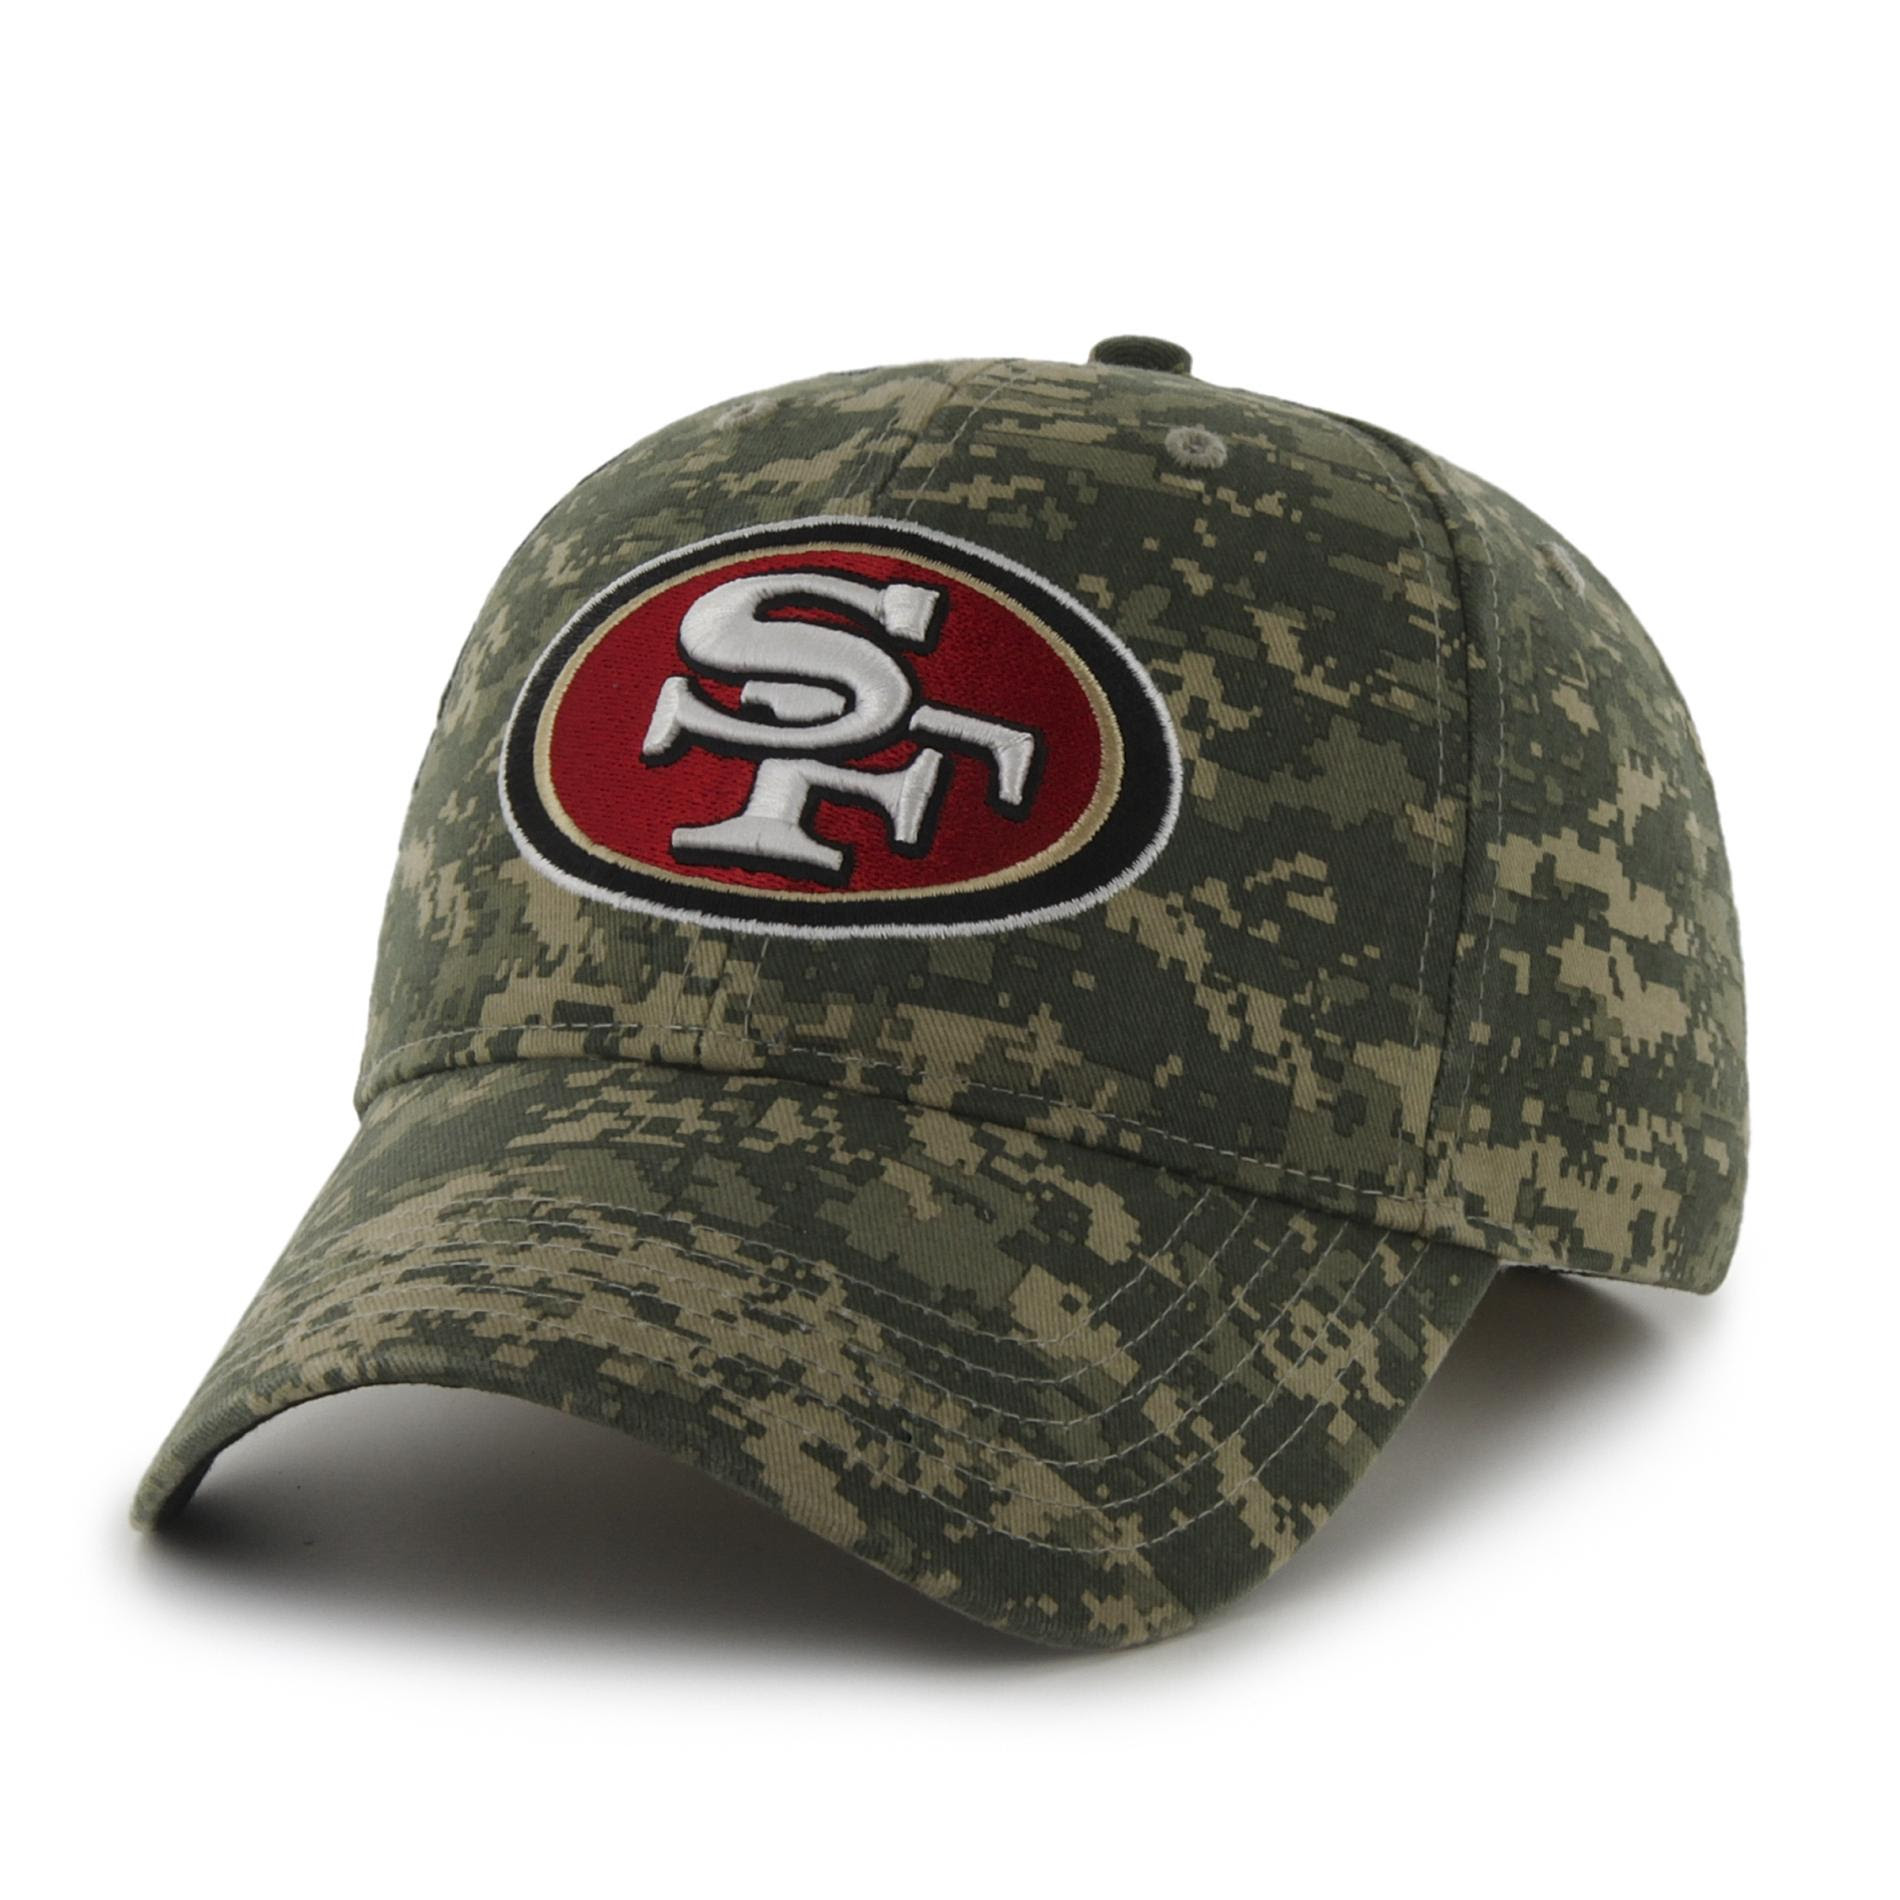 NFL Mens Camo Baseball Hat  San Francisco 49ers  Shop Your Way: Online Shopping  Earn Points